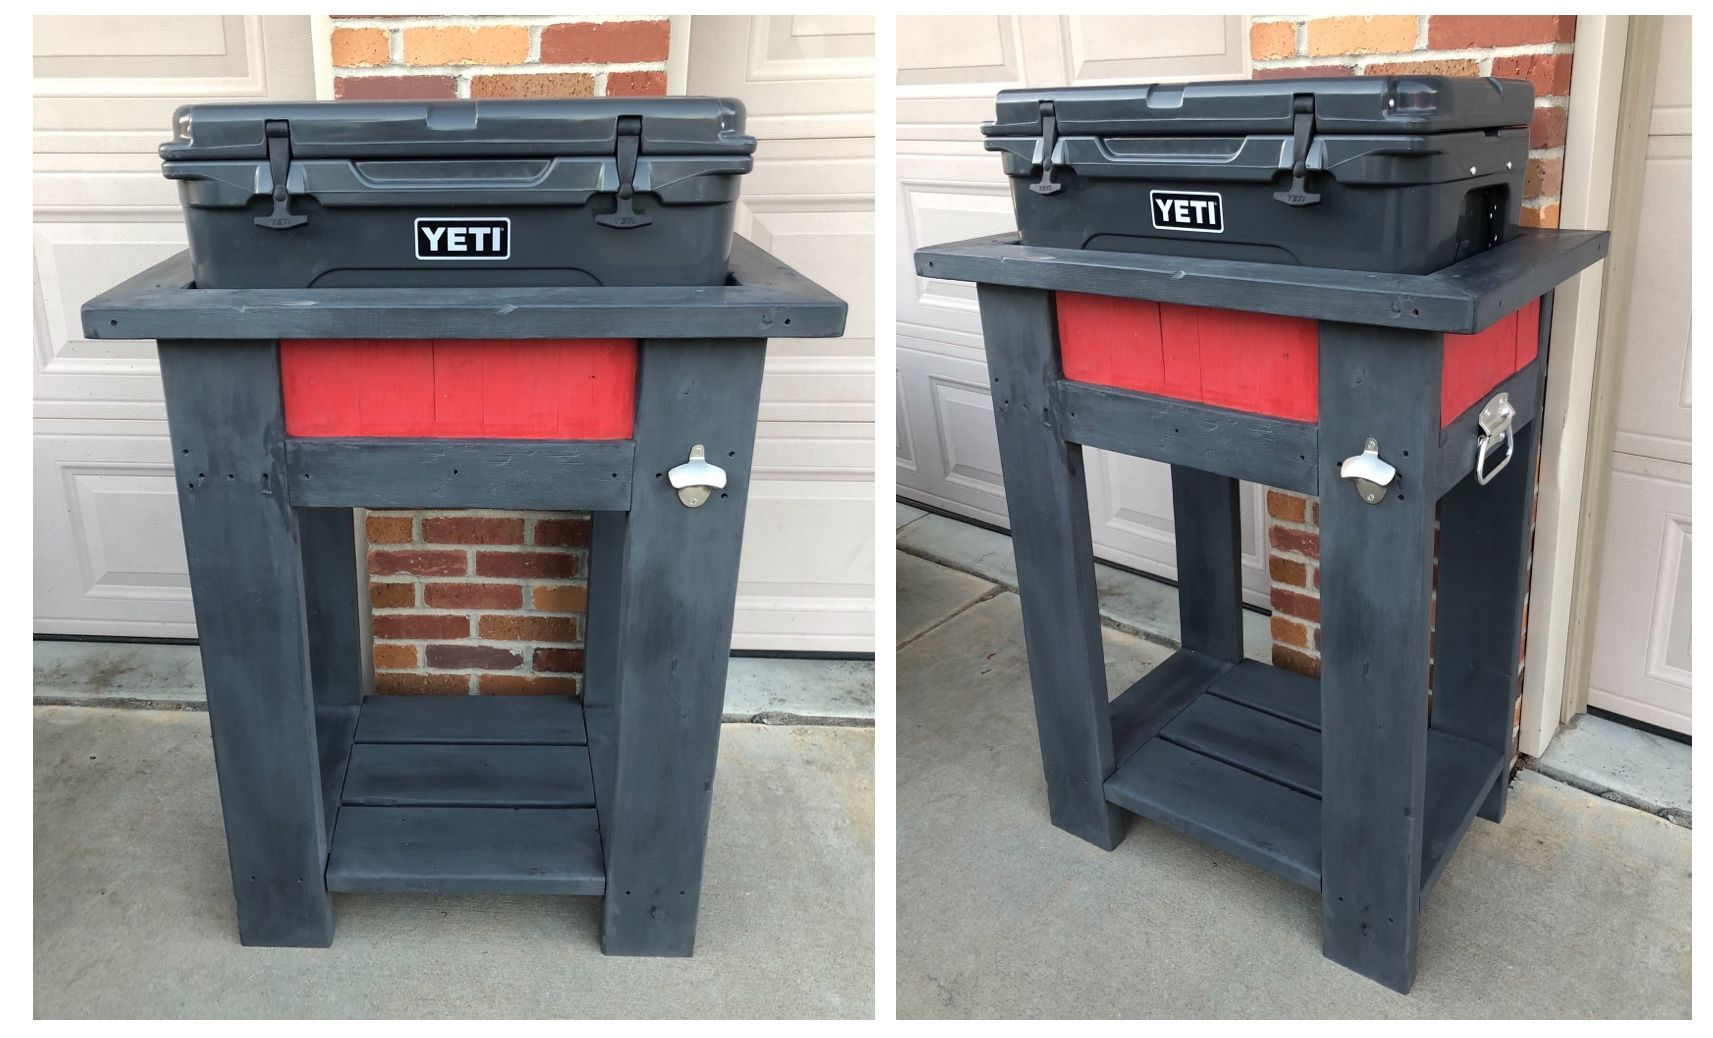 Yeti Cooler Stand Made A Cooler Stand For My 45 Quart Yeti Cooler Painted Charcoal Paint Yeticoolers Yeti Coolers Cooler Stand Yeti Cooler